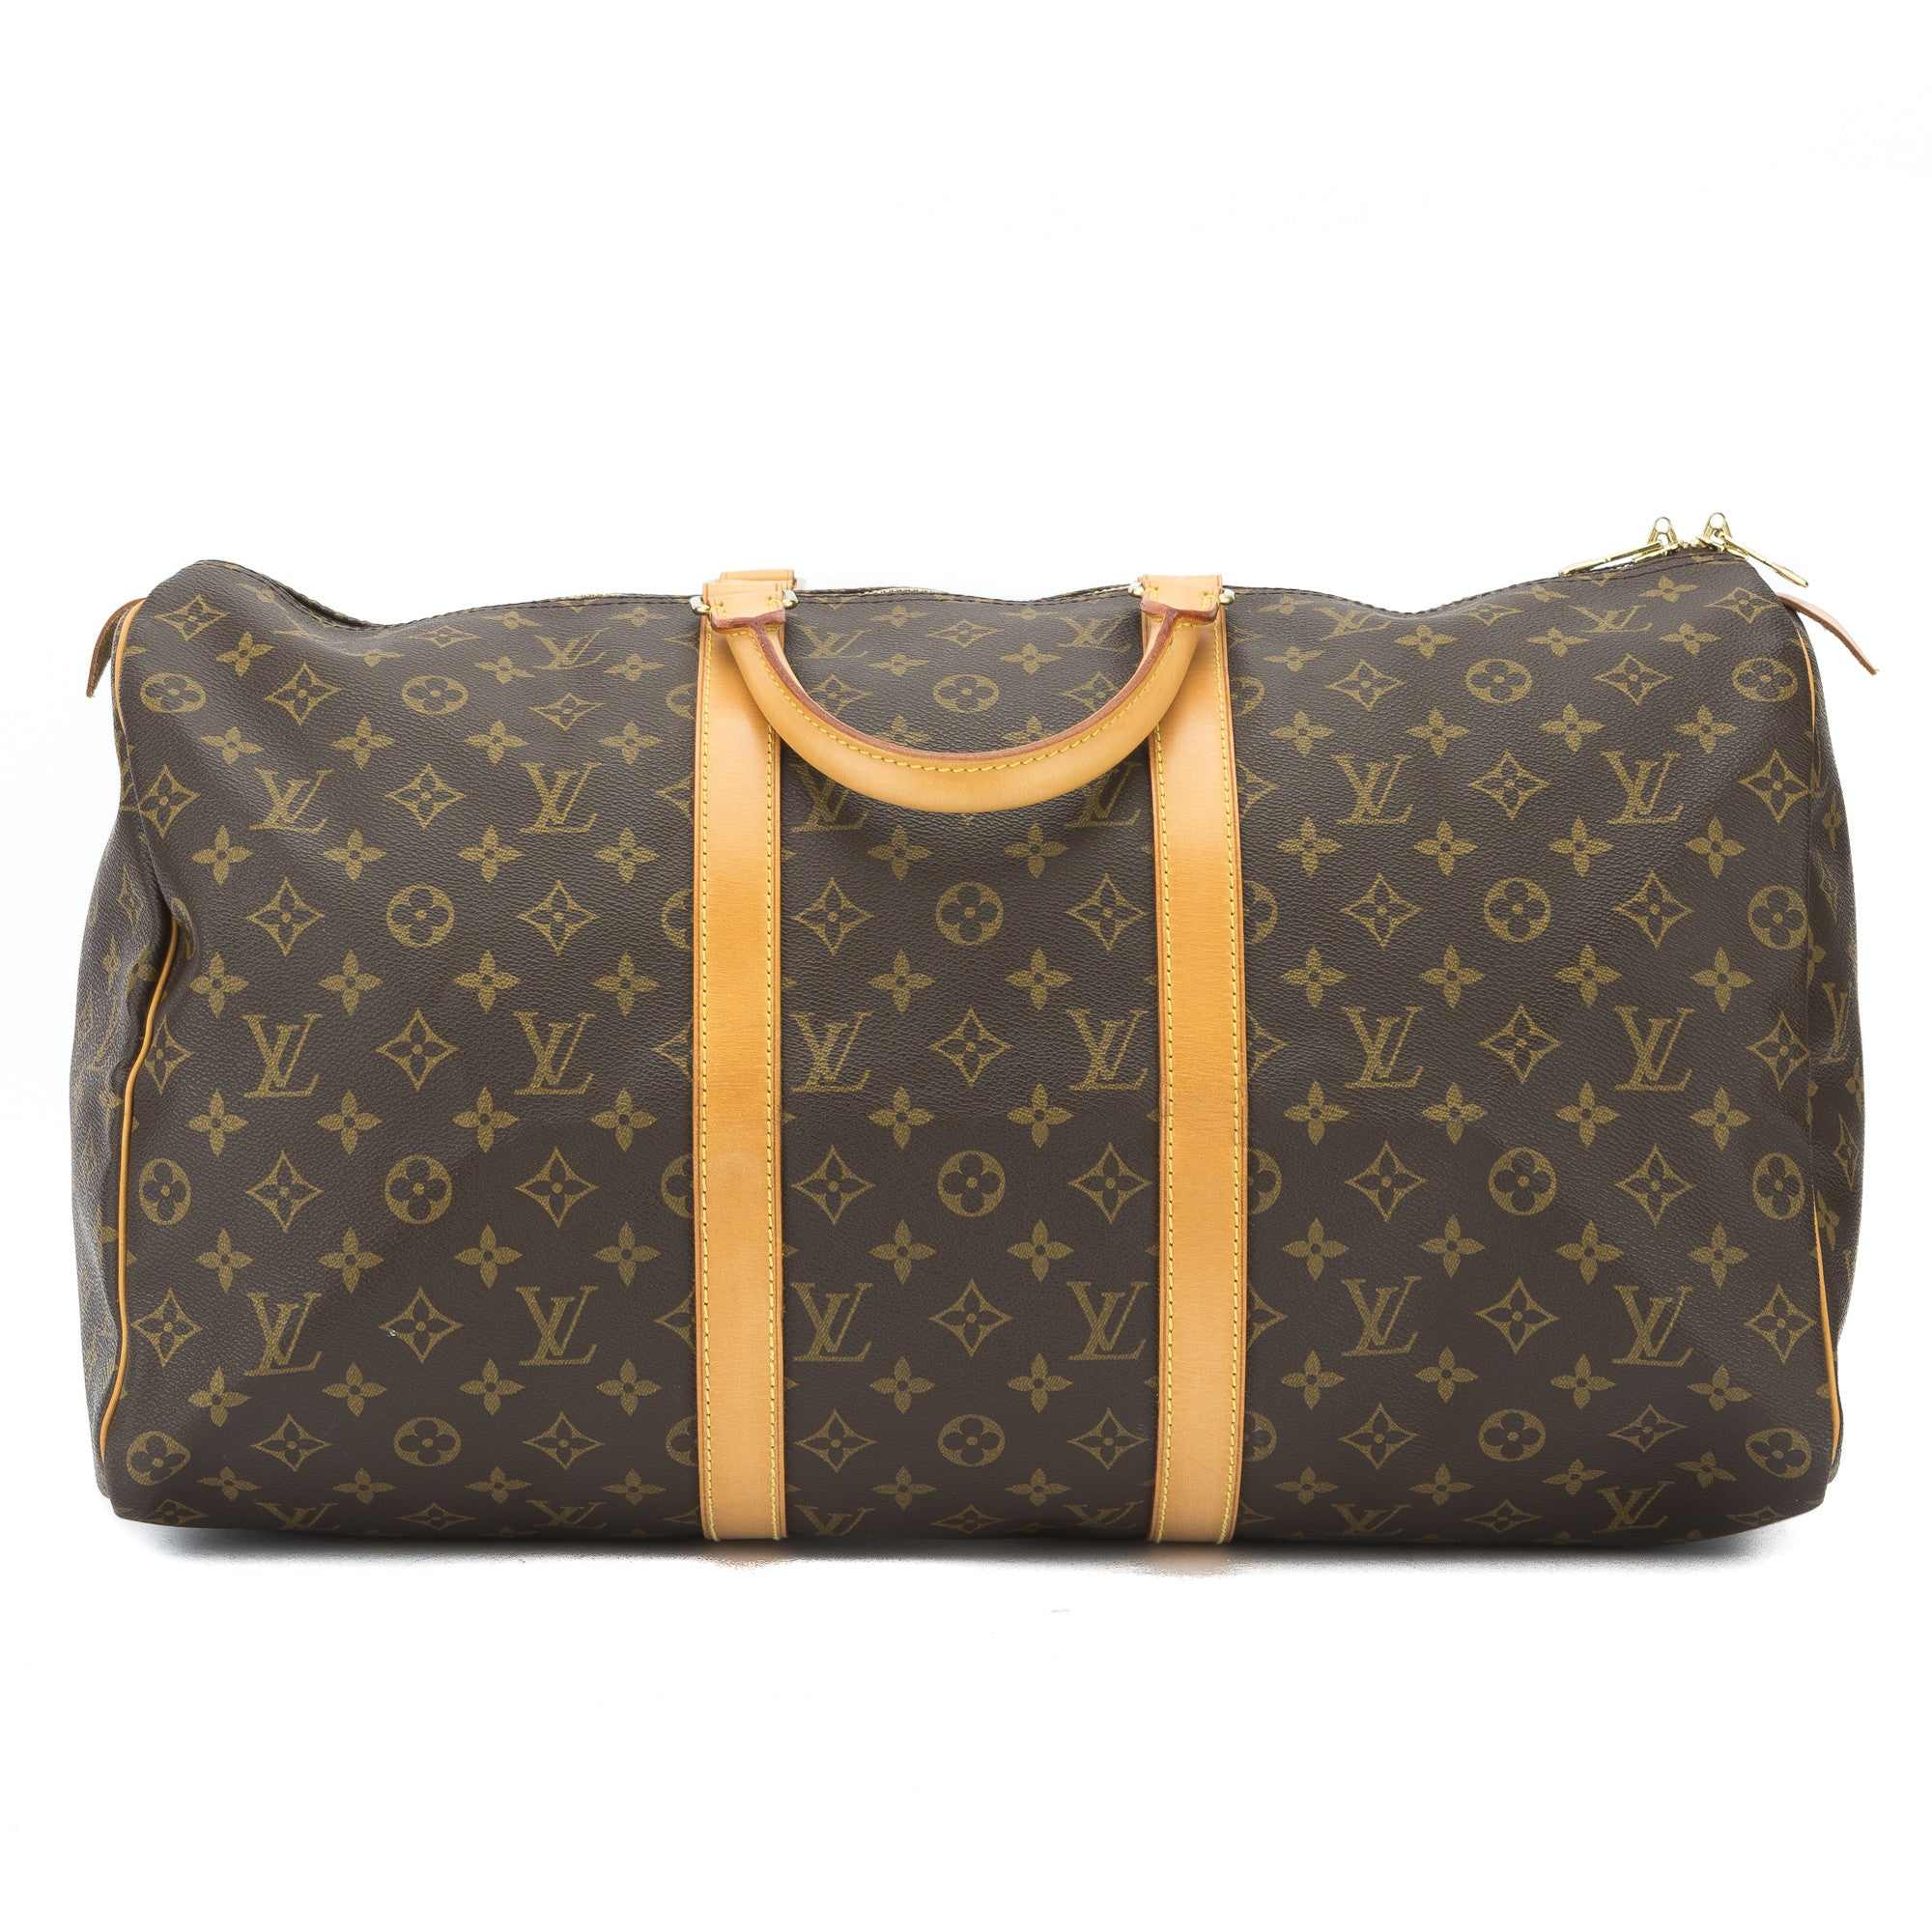 2bb294f87f9f Louis Vuitton Keepall 50 Boston (Pre Owned) - 2824039